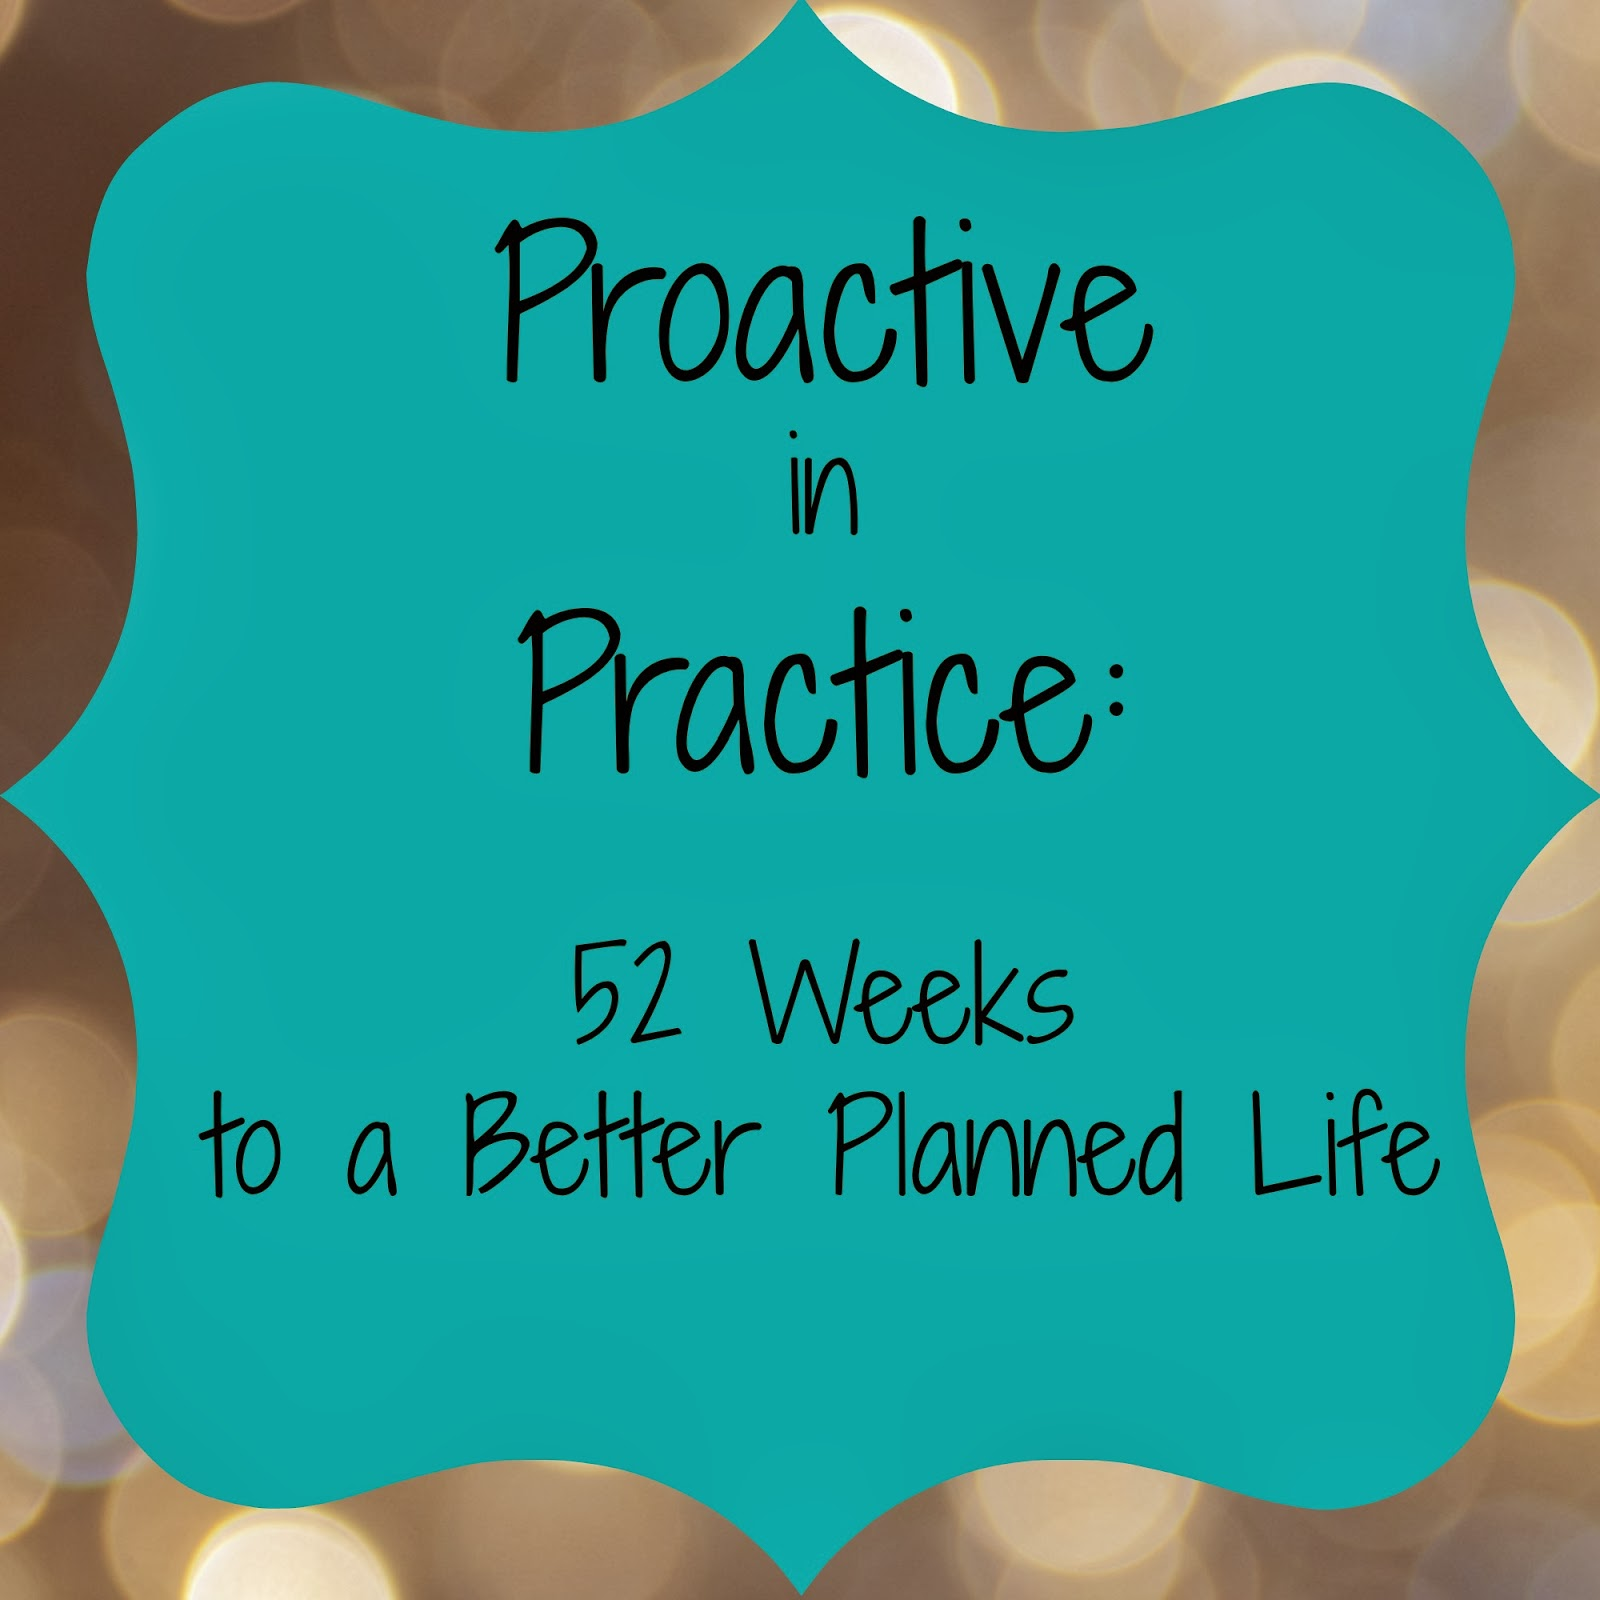 Proactive in Practice: 52 Weeks to a Better Planned Life